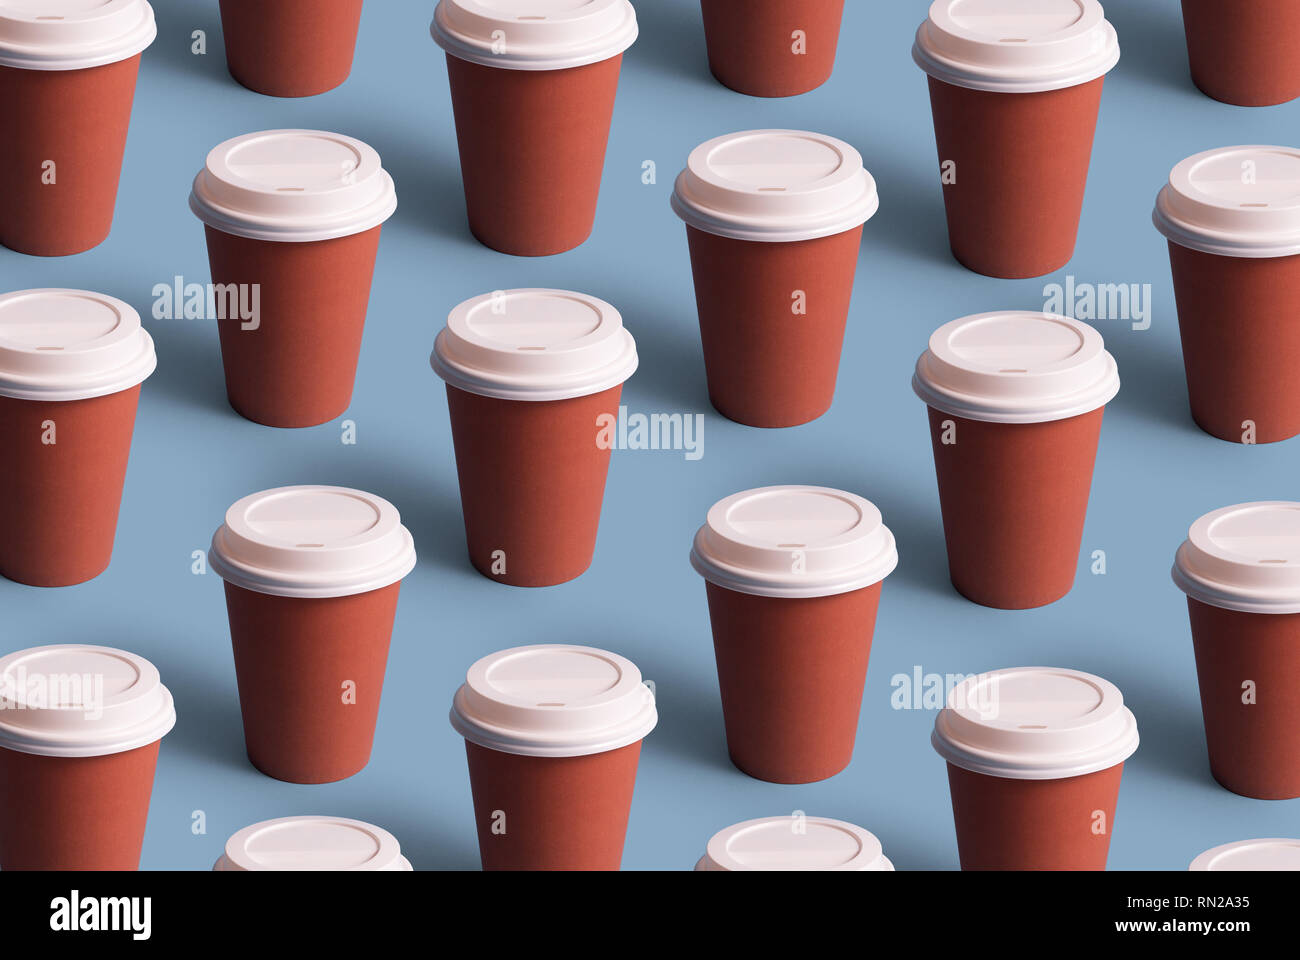 Disposable coffee cups organized in a row over blue background Stock Photo